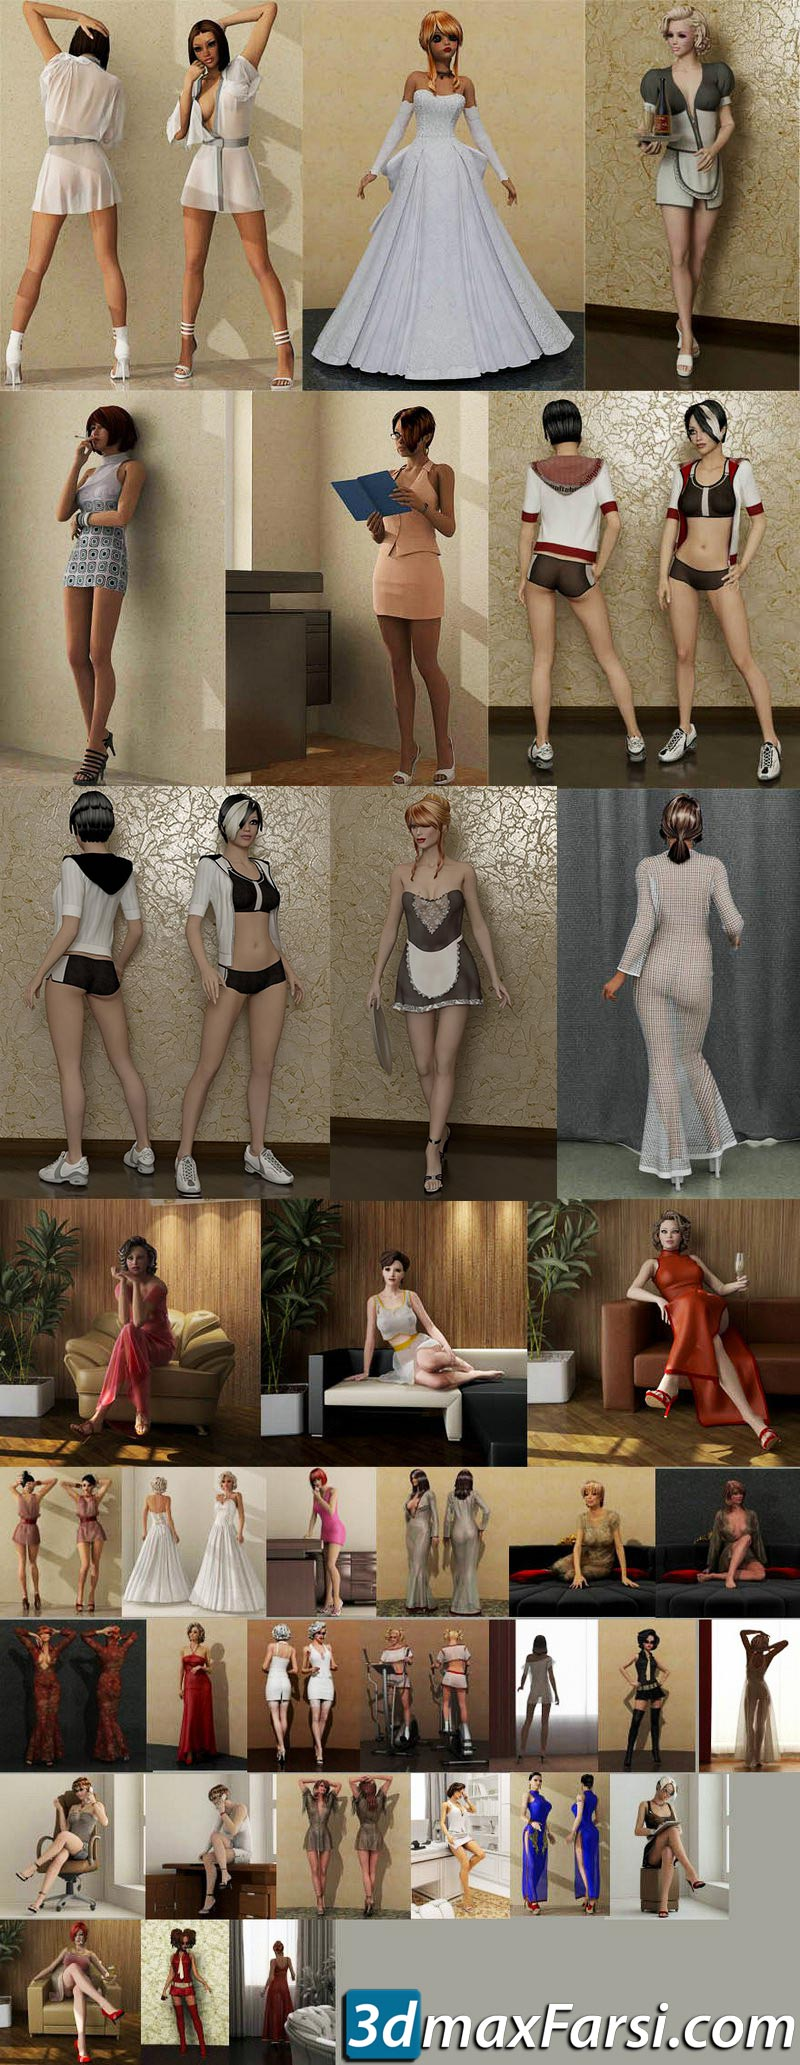 Sexy Lady Models Collections 1 & 2 3ds max vray